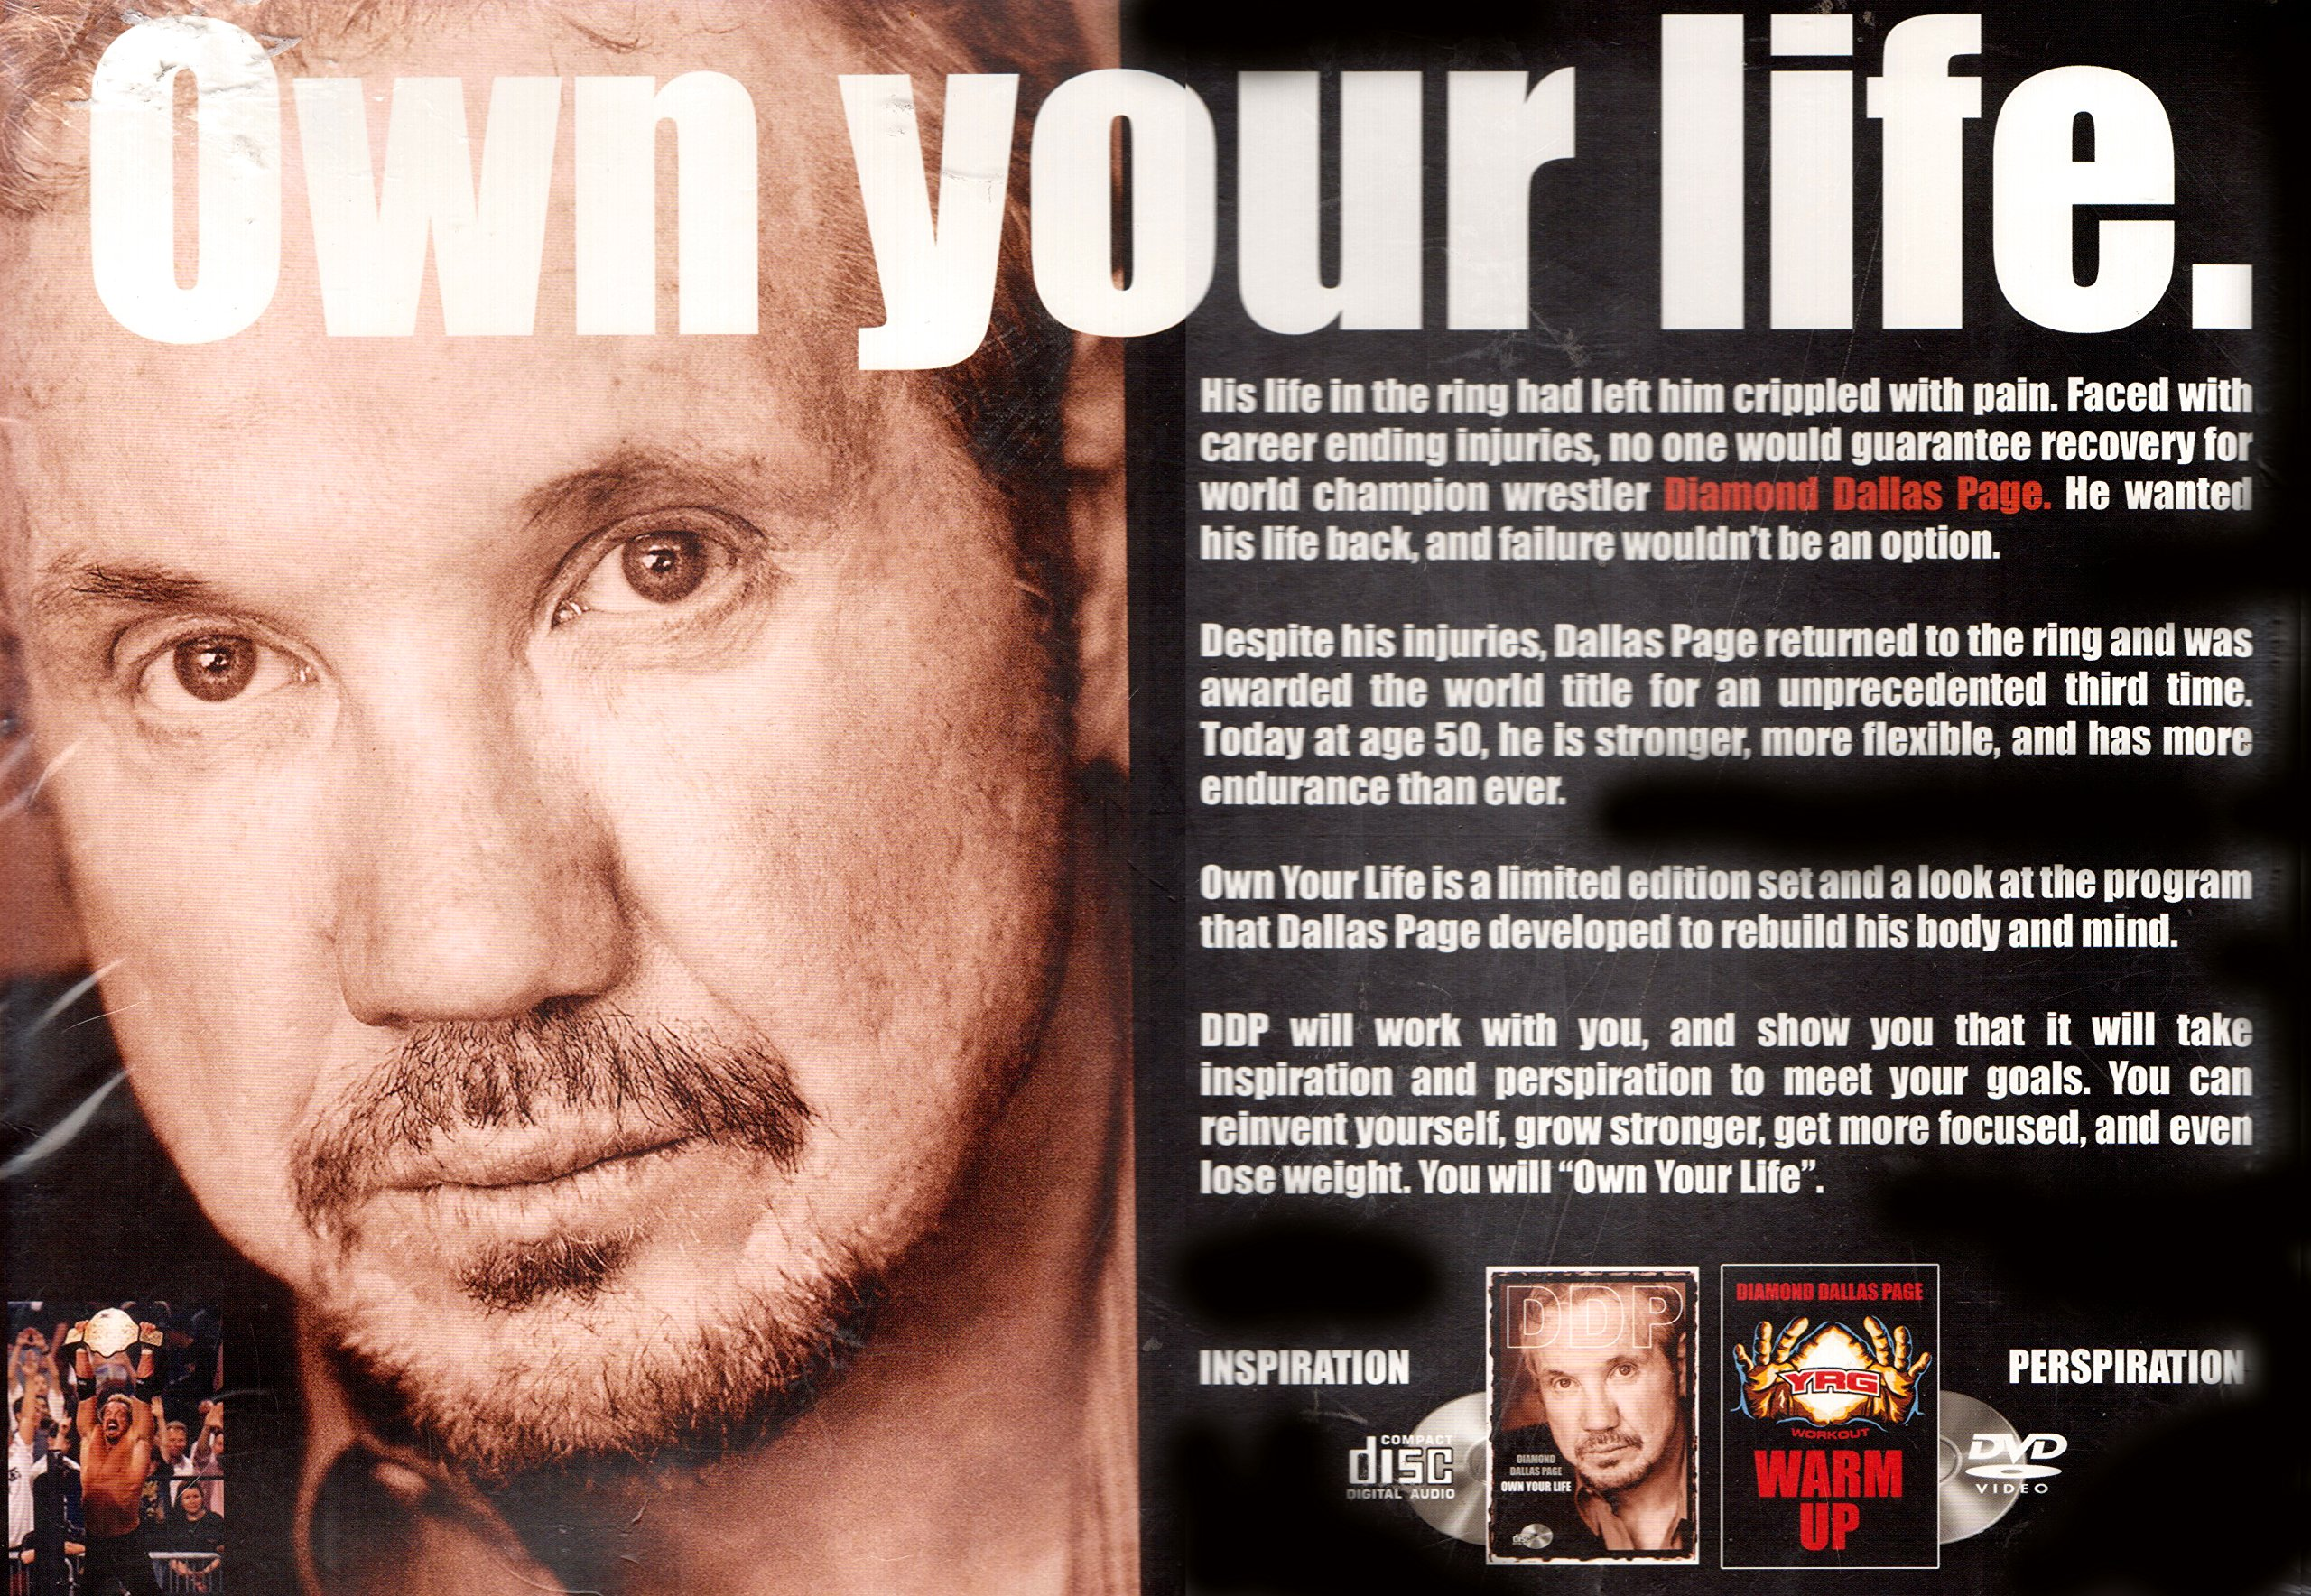 Own Your Life Inspiration Cd And Perspiration Dvd Warm Up Diamond Dallas Page Amazon Com Books